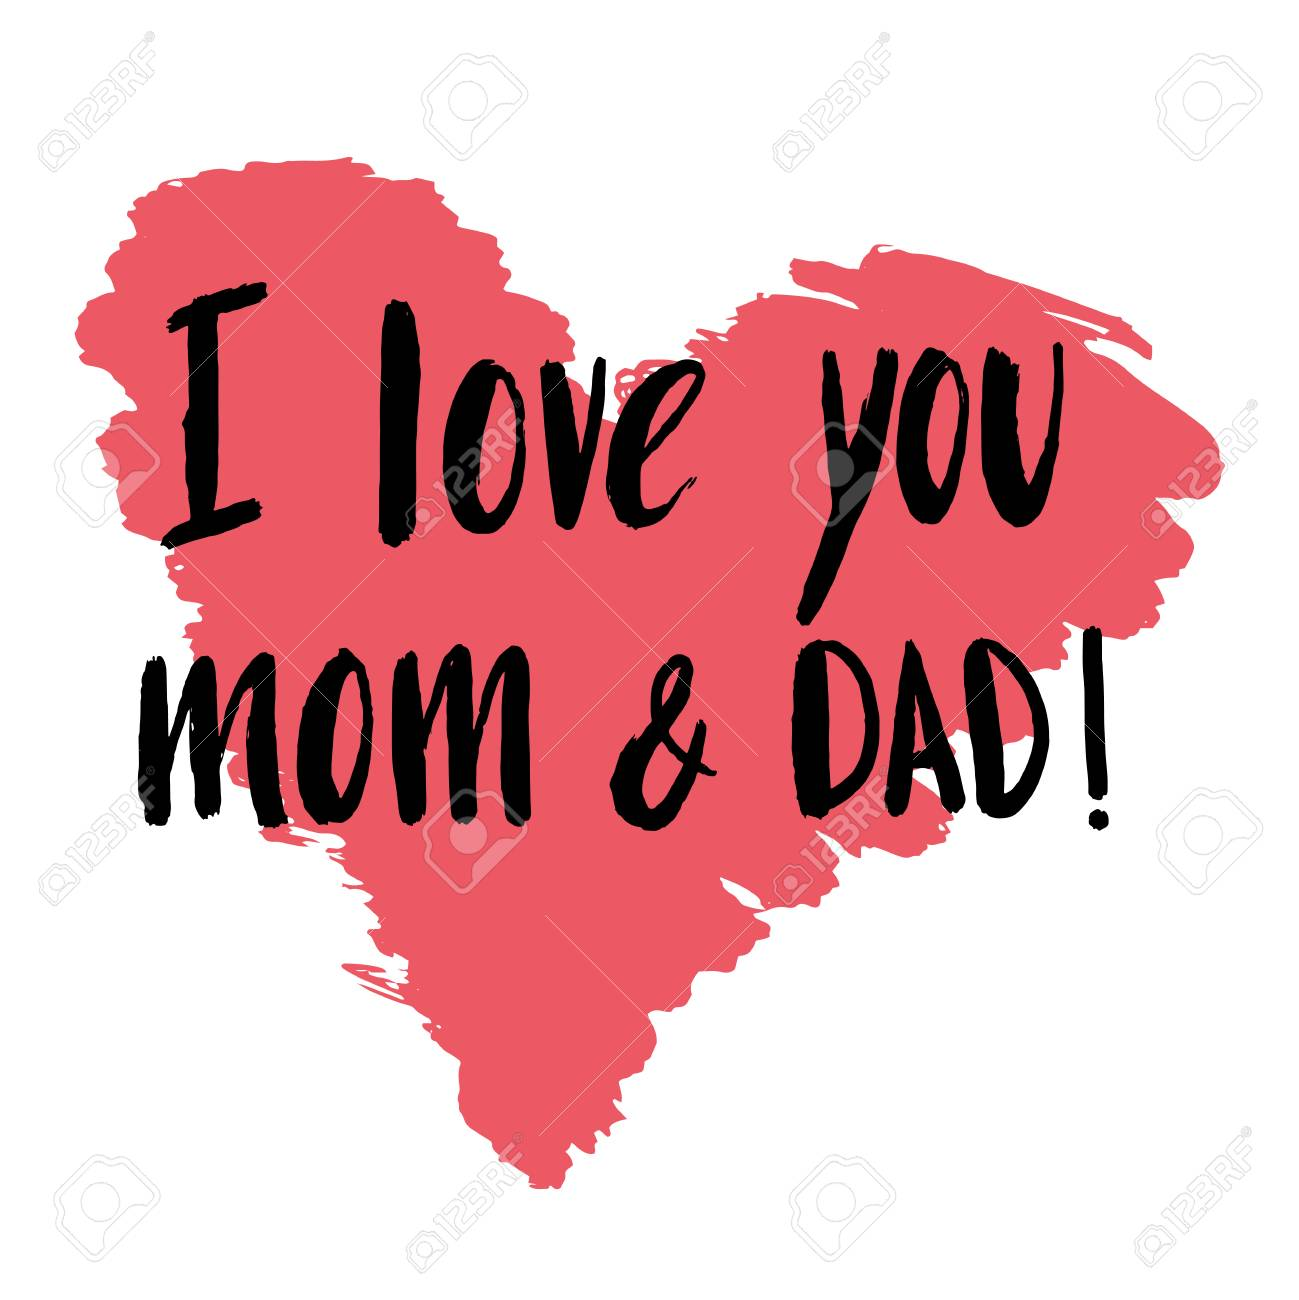 Hand Drawn Lettering Quote I Love You Mom And Dad For Poster Royalty Free Cliparts Vectors And Stock Illustration Image 106030792